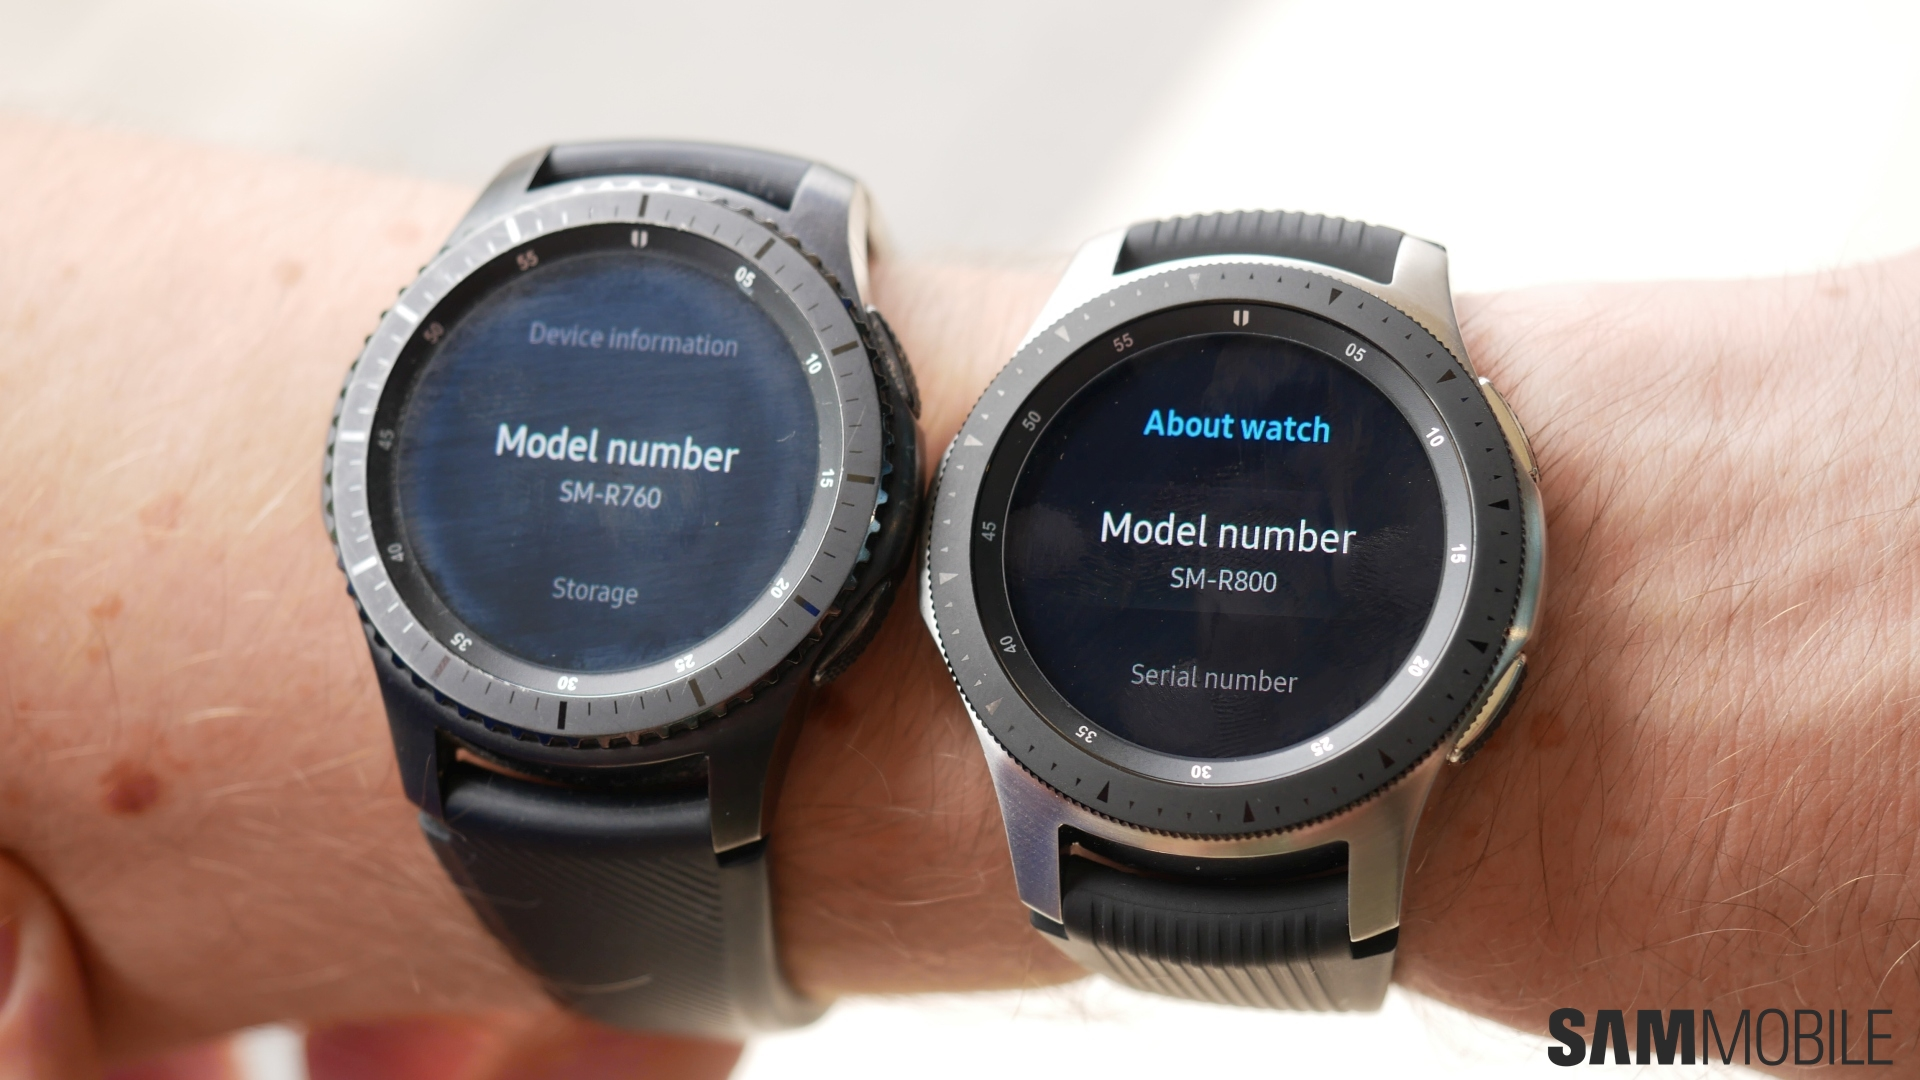 Samsung Galaxy Watch vs Gear S3 in pictures